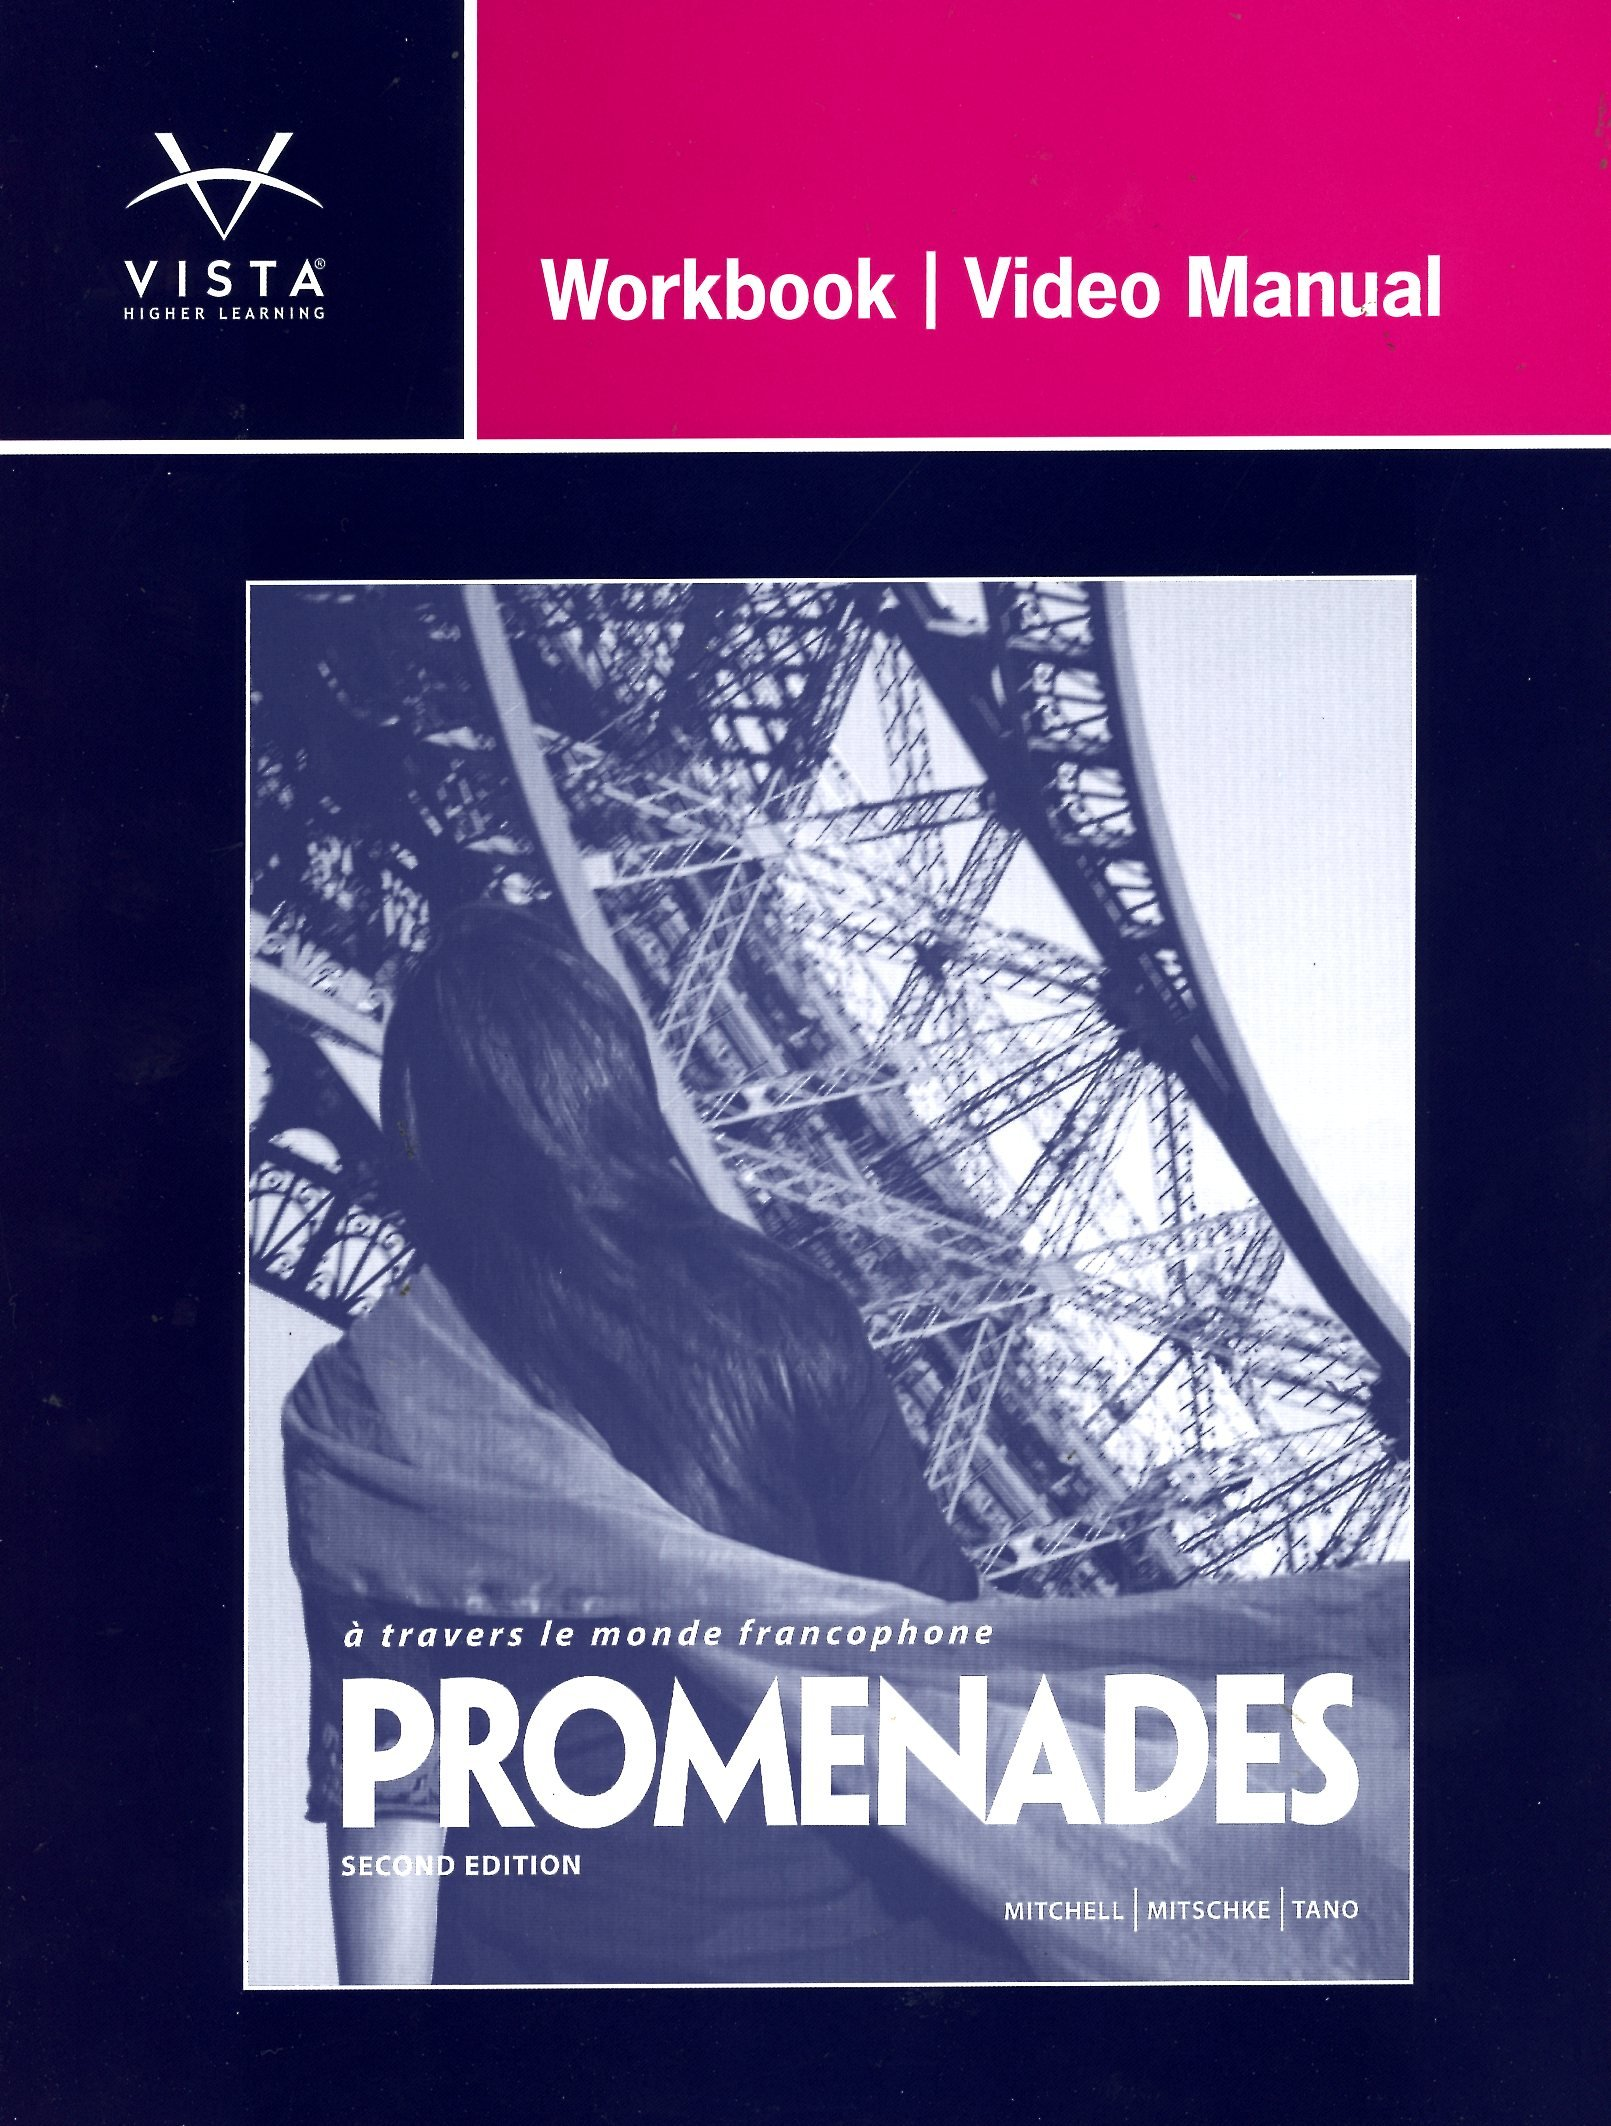 Promenades workbookvideo manu vhl 9781618570178 amazon books fandeluxe Gallery